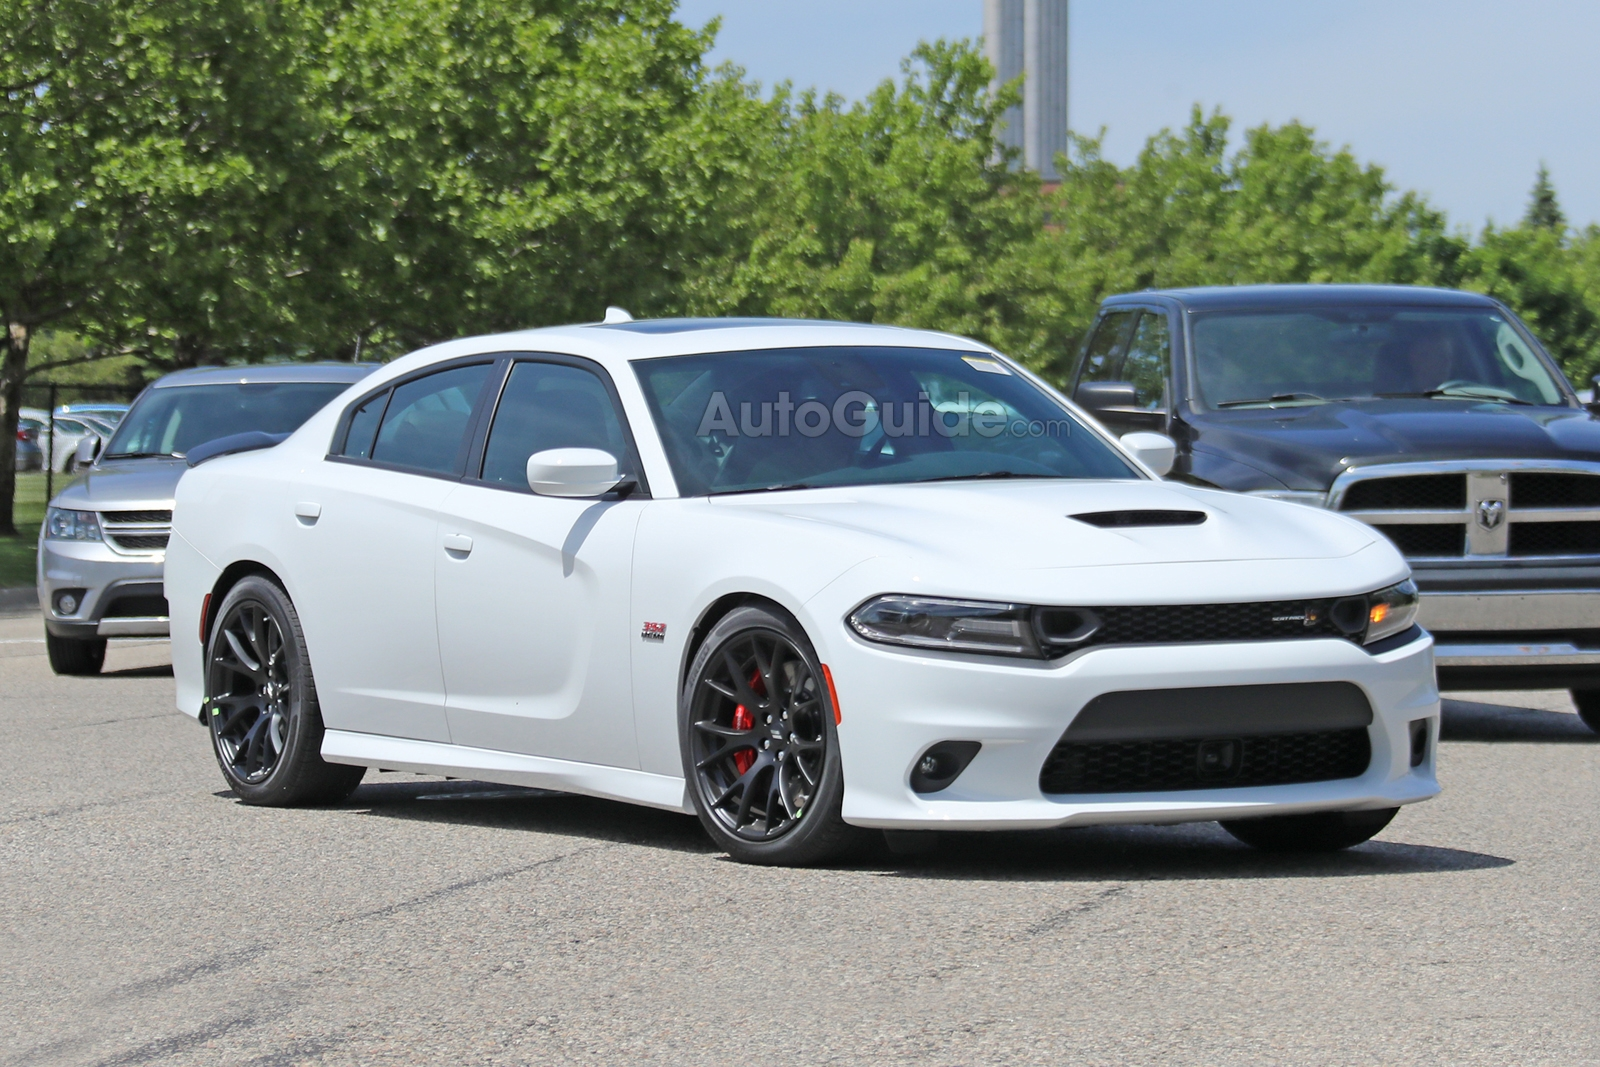 Michelin Tires Reviews >> 2019 Dodge Charger Scat Pack Revealed in New Spy Photos » AutoGuide.com News